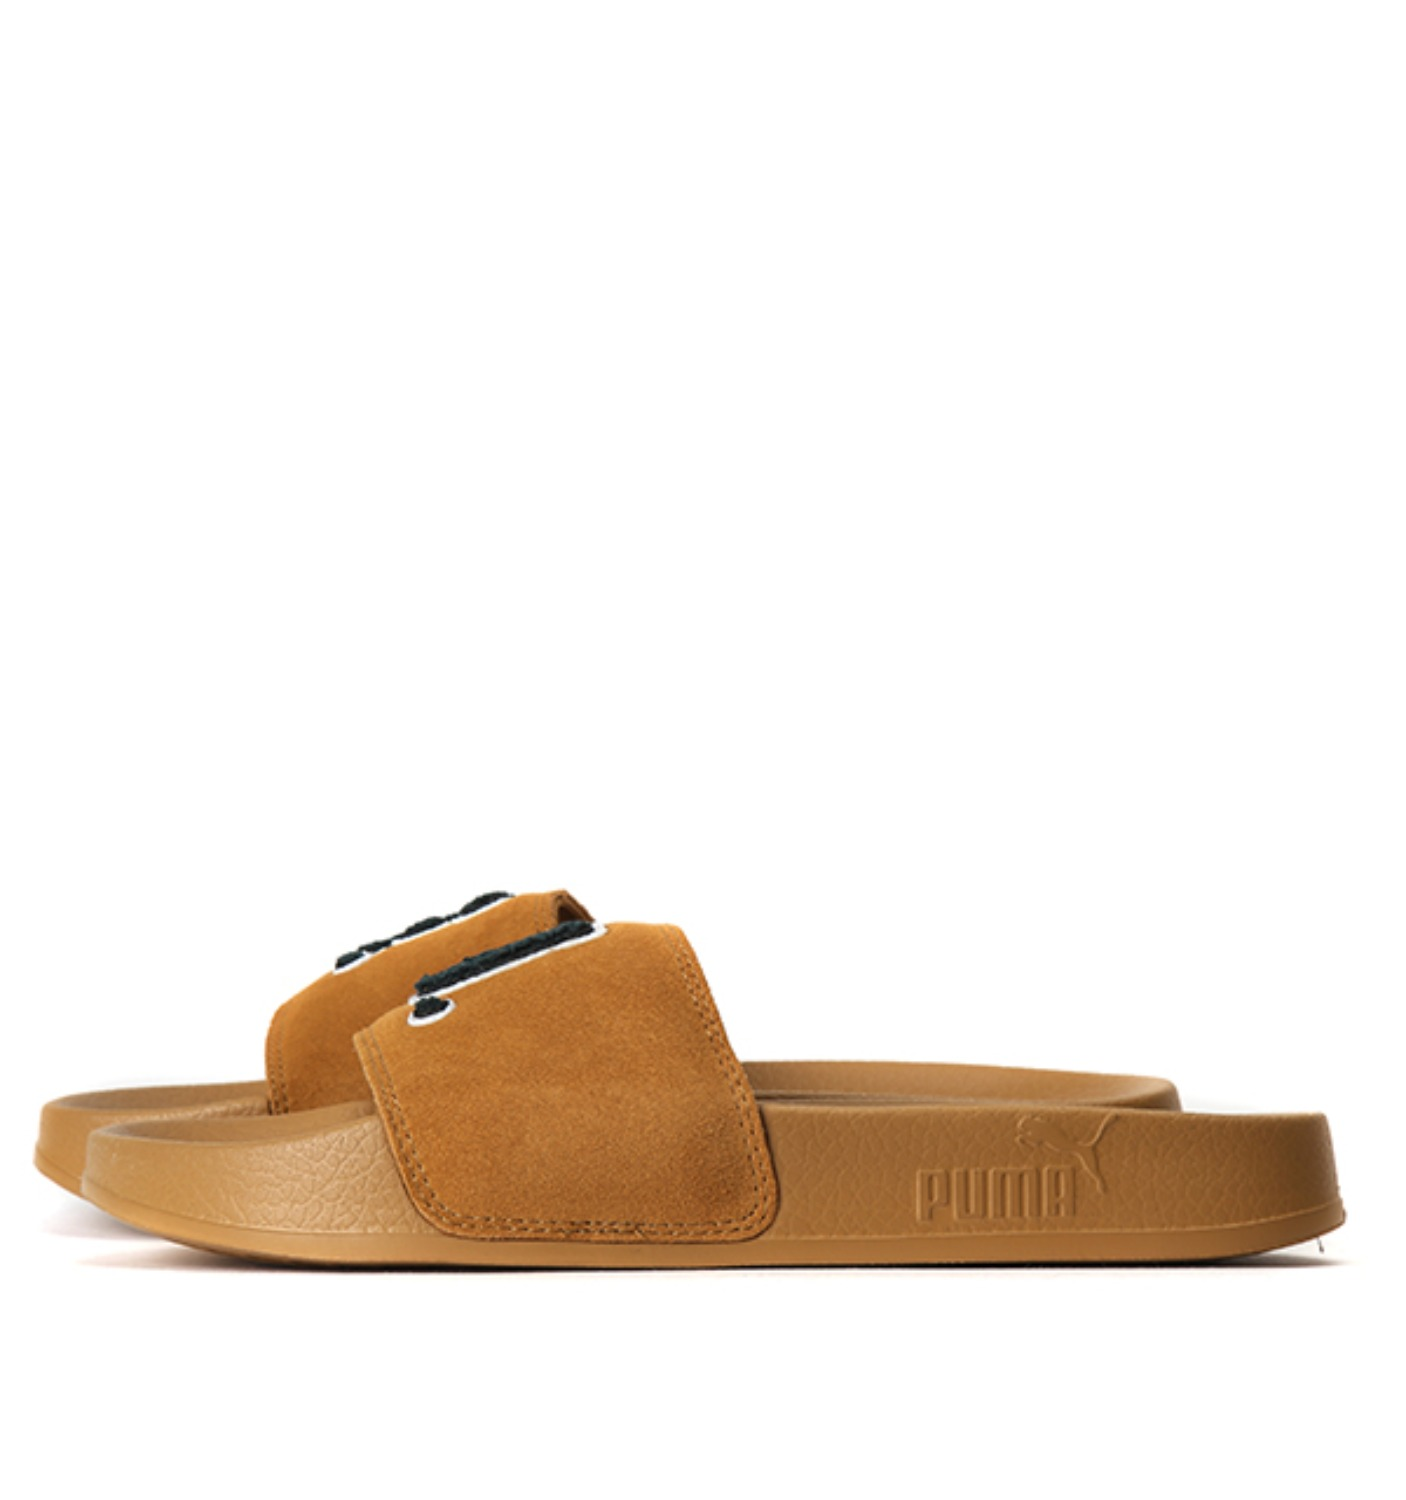 FENTY UNISEX SUEDE SLIDE SANDALS Golden Brown-Scarab